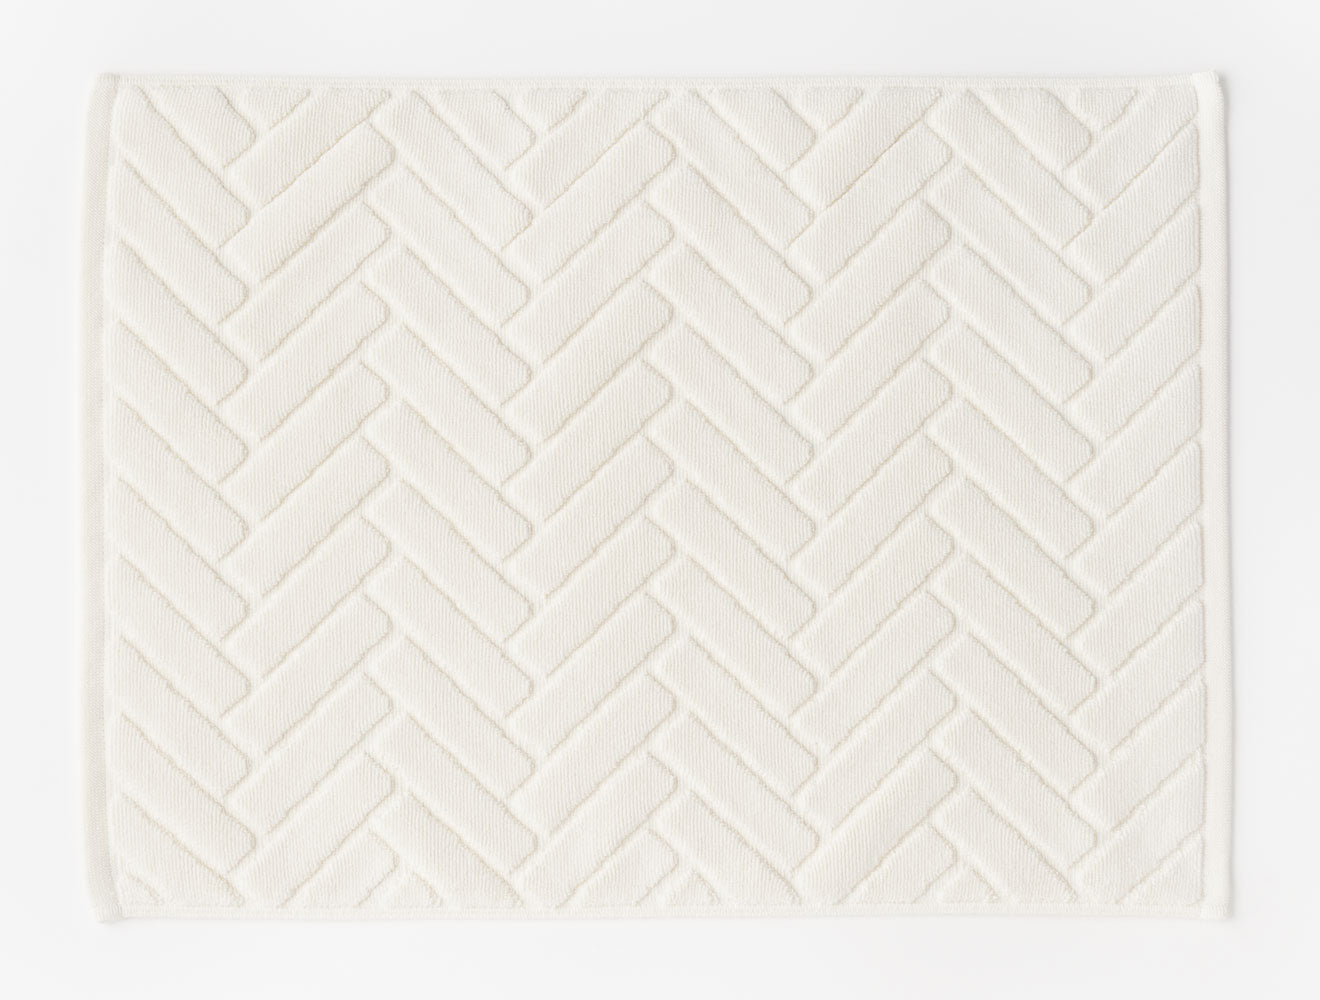 BATH MAT DECK MAT / WHITE